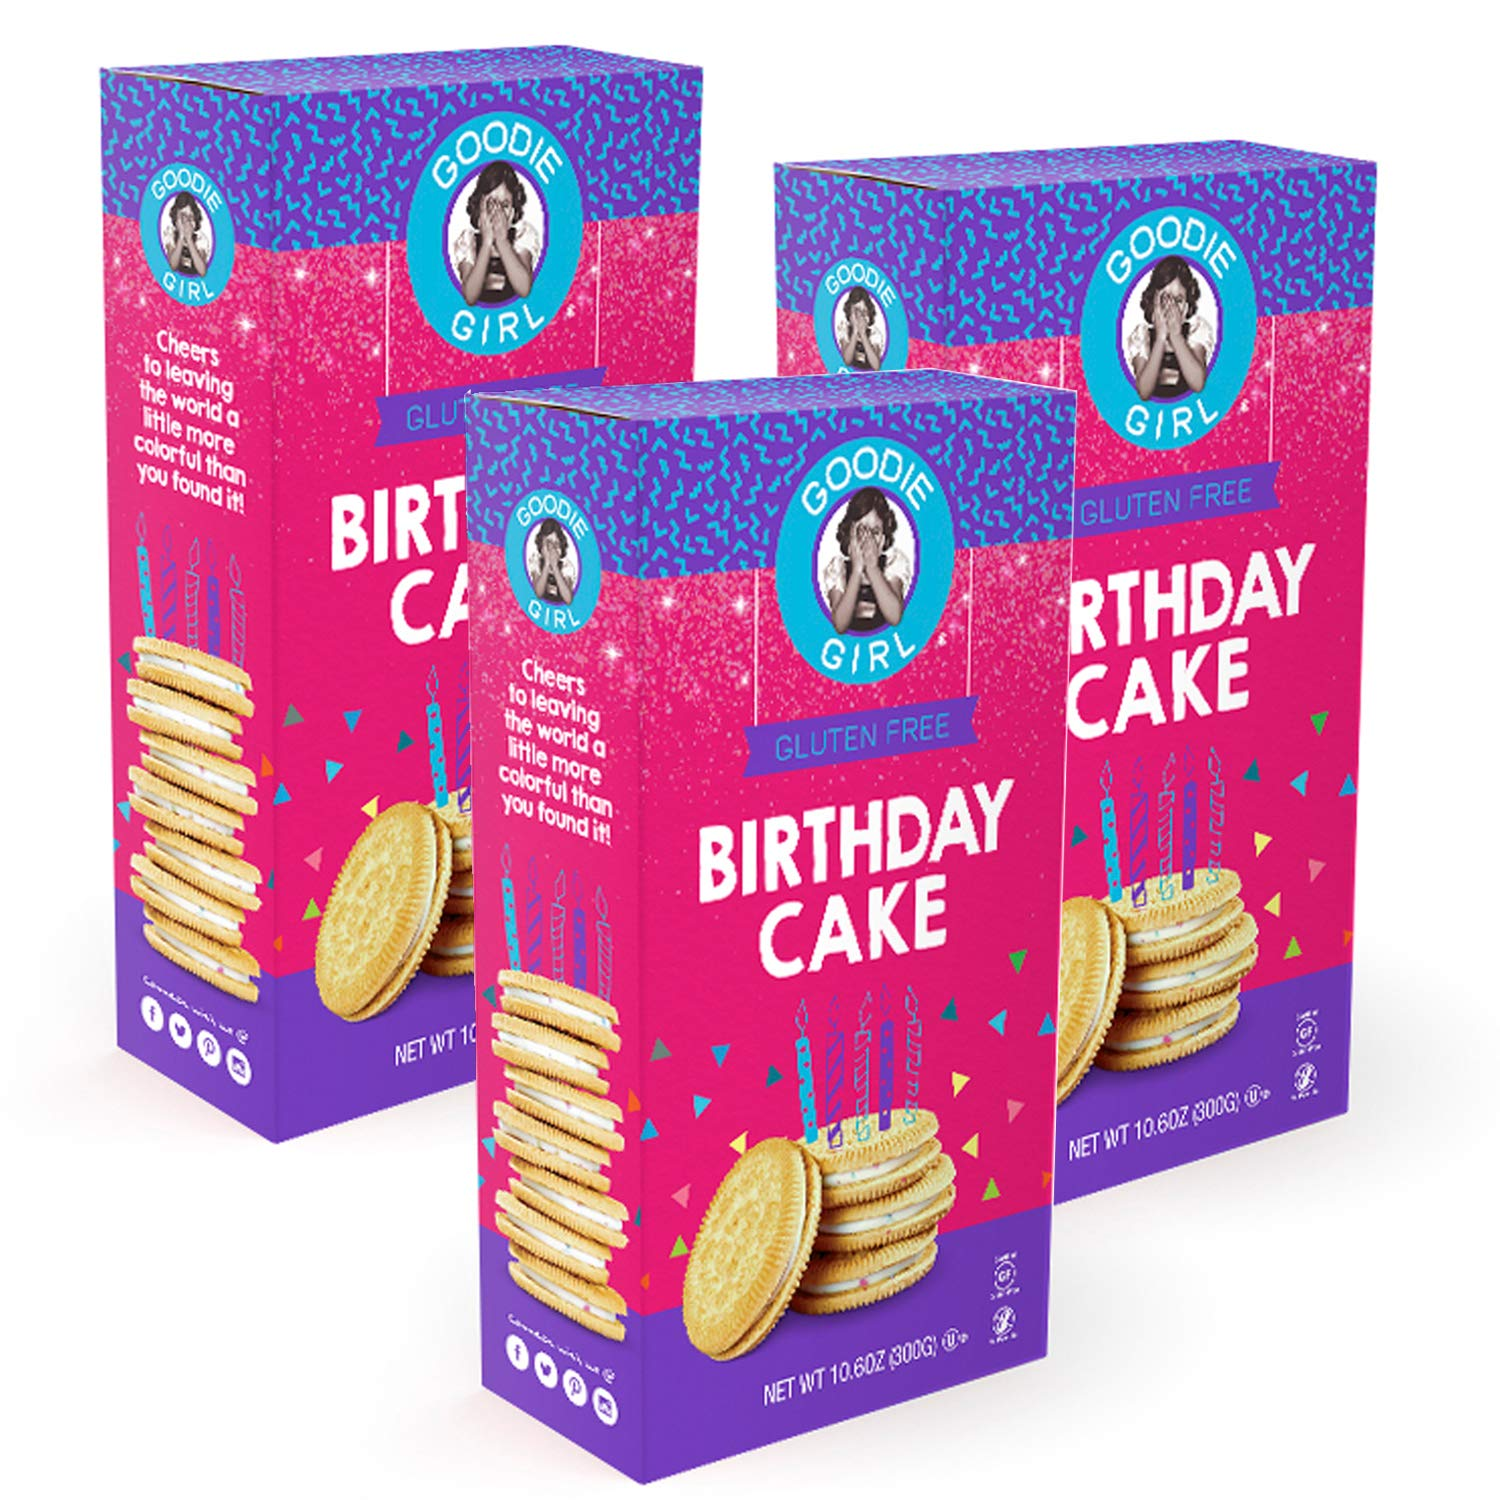 Goodie Girl Gluten Free Cookies, Birthday Cake Sandwich Cookies, Gluten Free Cookies Peanut Free Kosher Delicious Snack Cookies (10oz Box, Pack of 3)